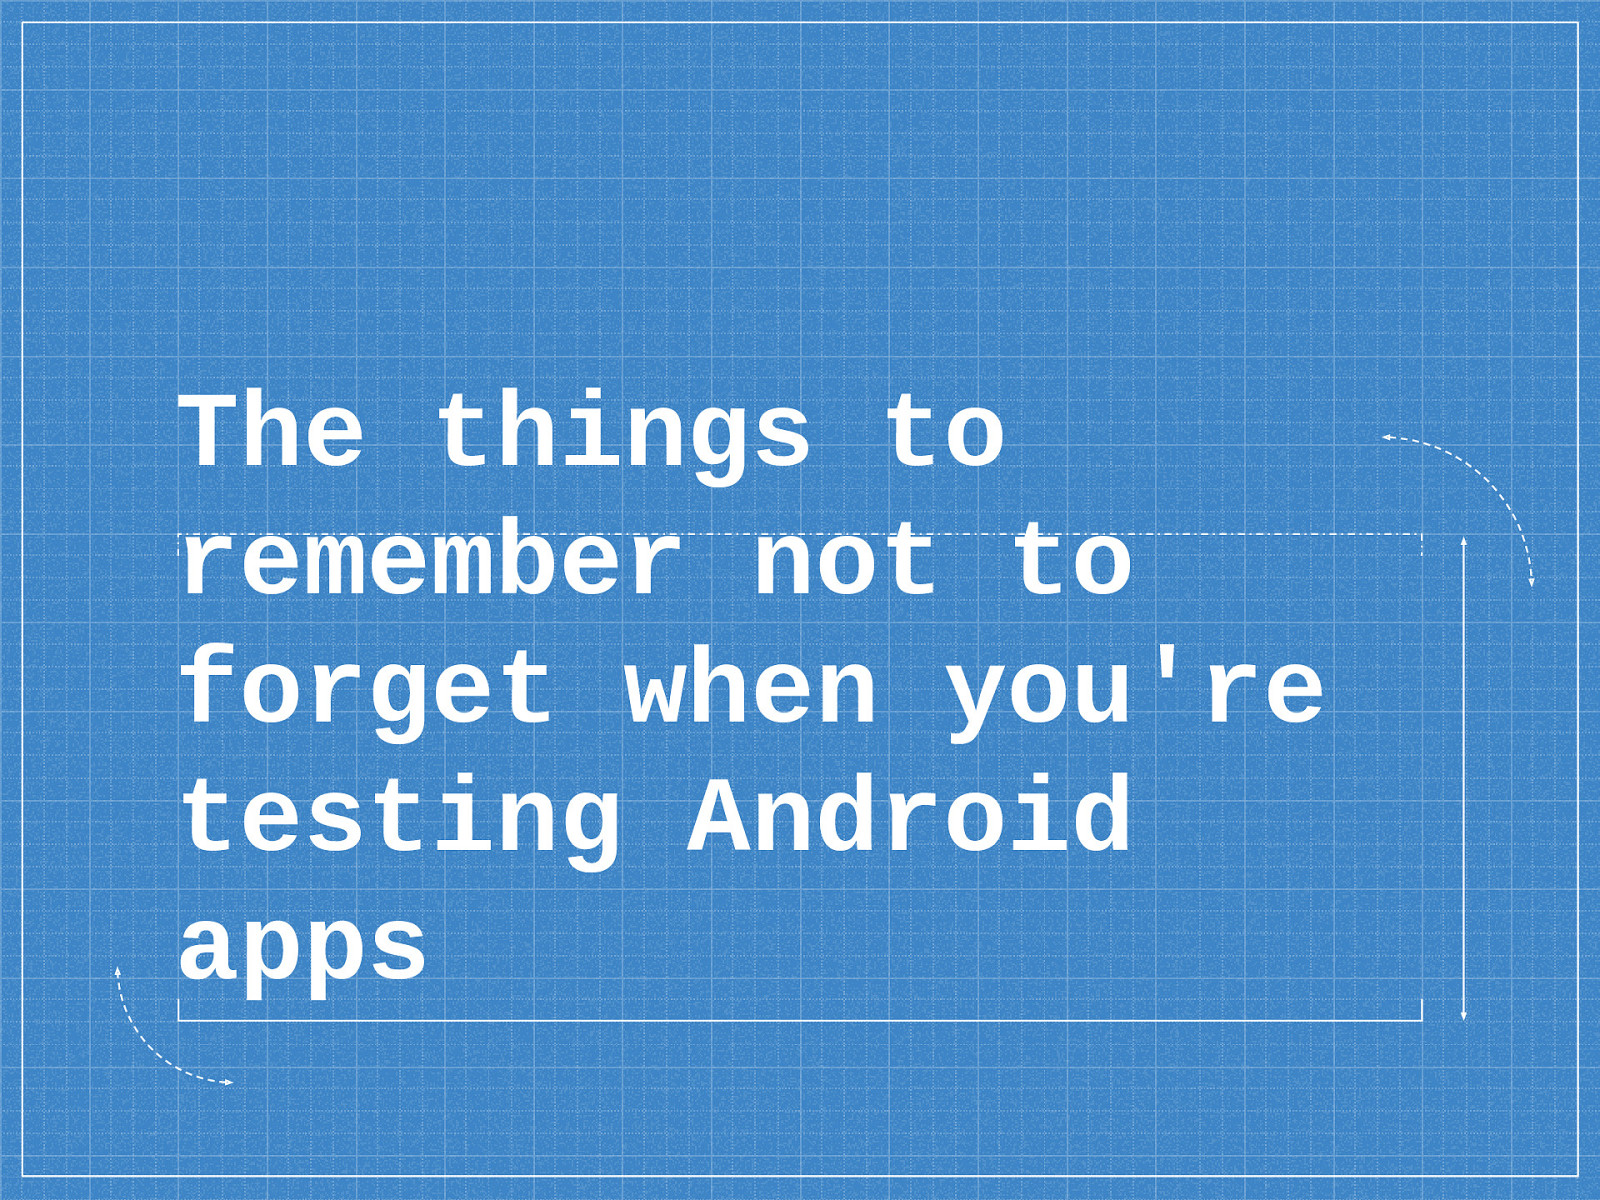 The things to remember not to forget when you're testing Android apps